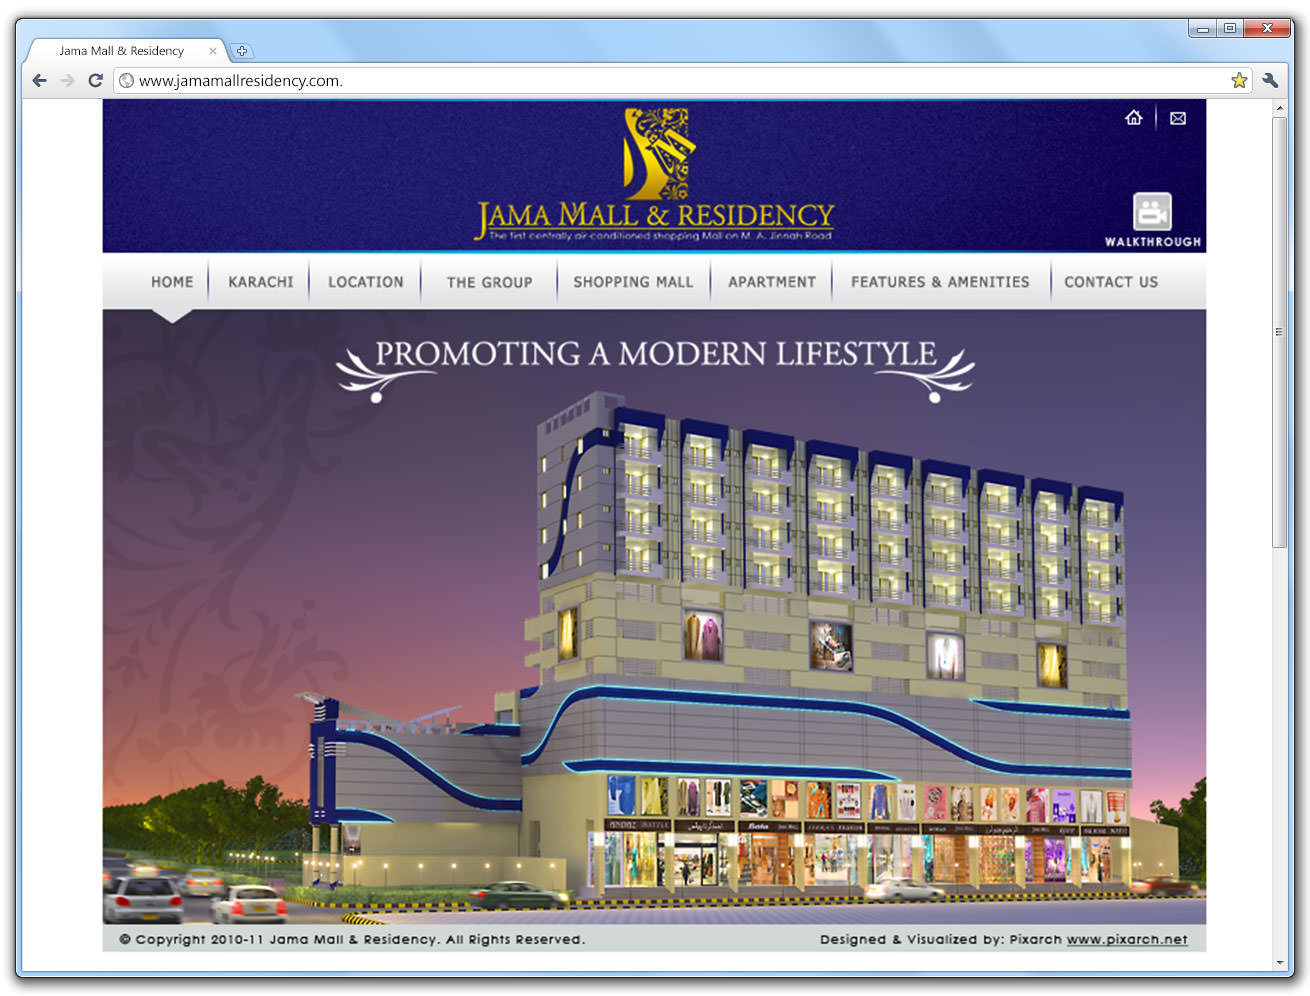 jama-mall-and-residency-website